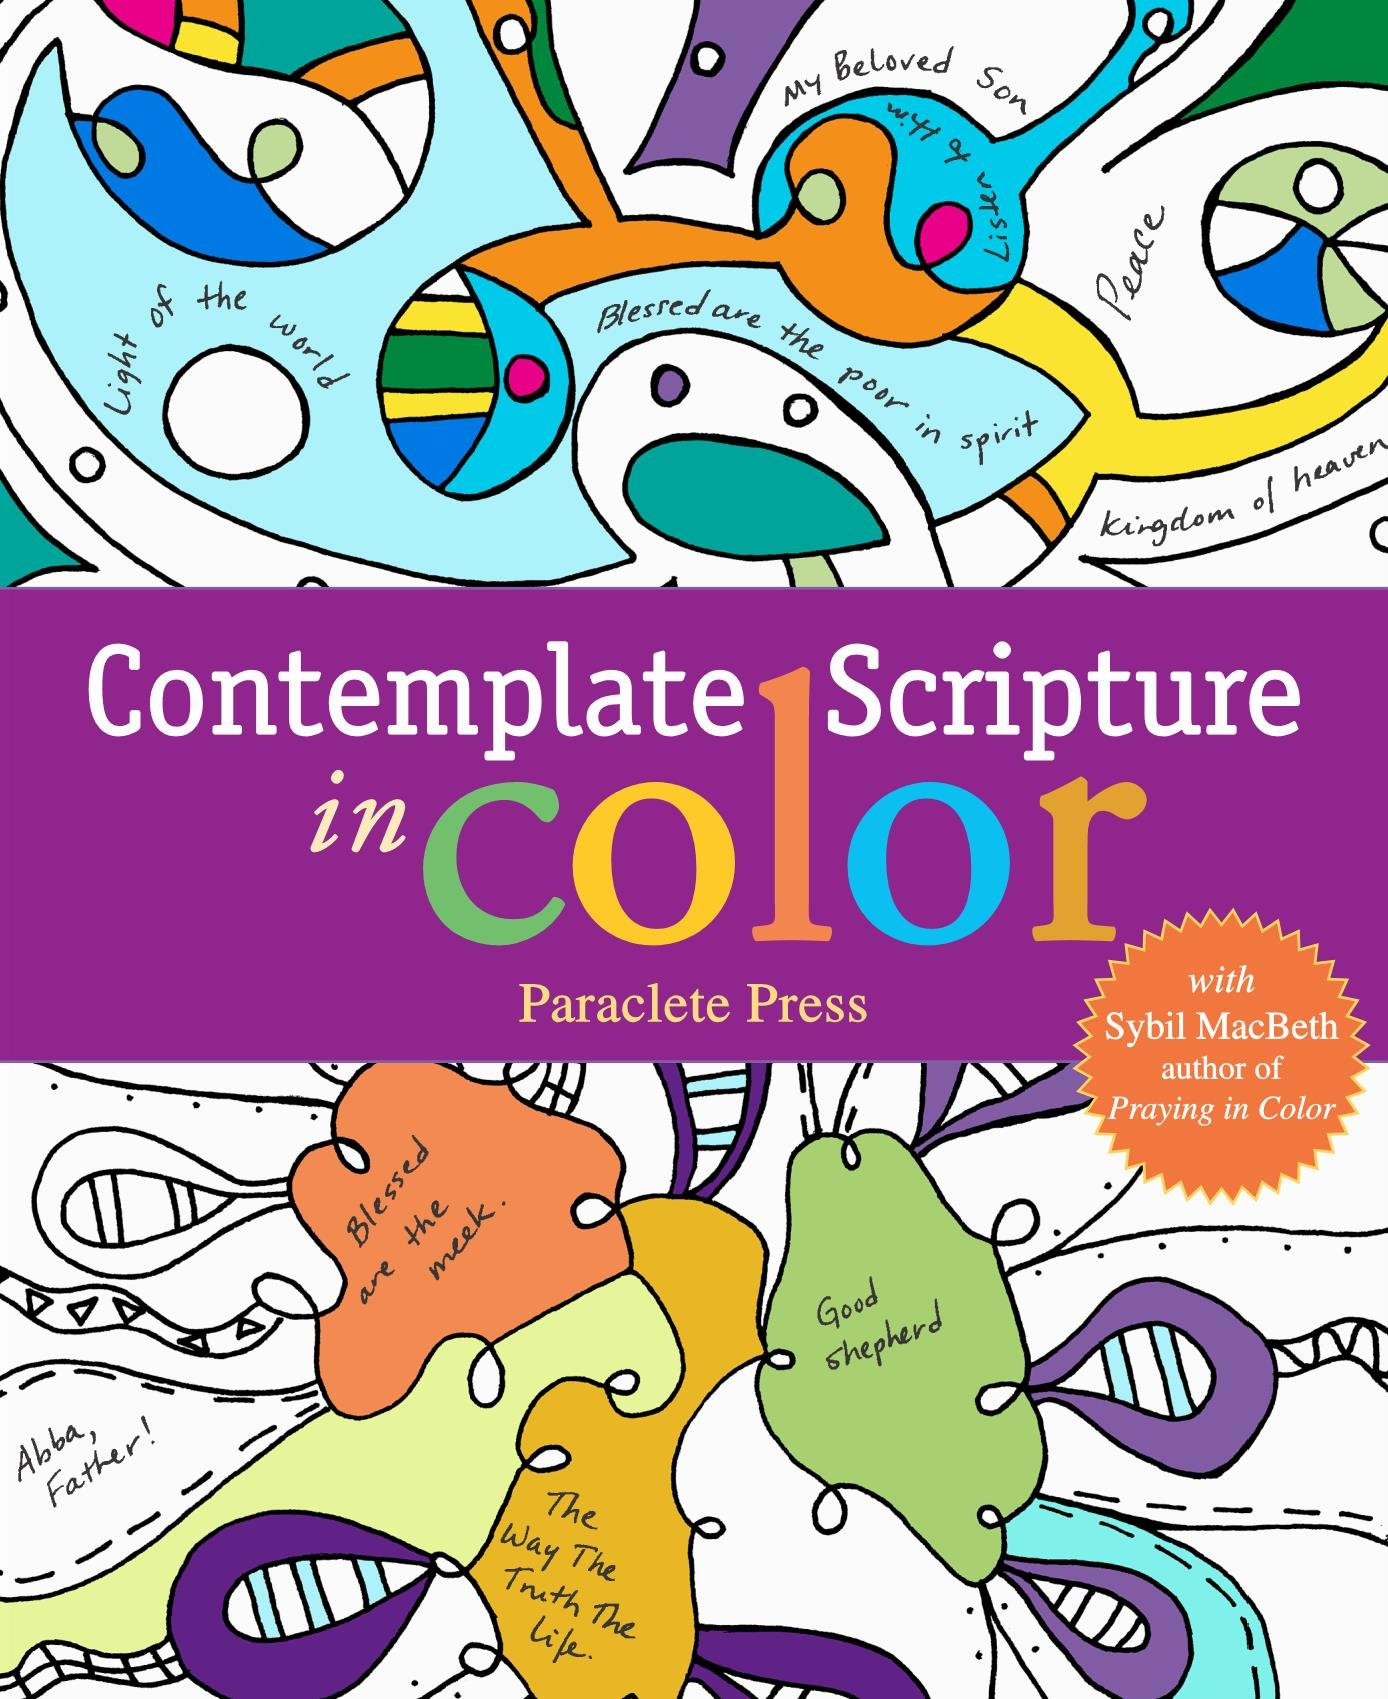 contemplate-scripture-in-color-with-sybil-macbeth-author-of-praying-in-color